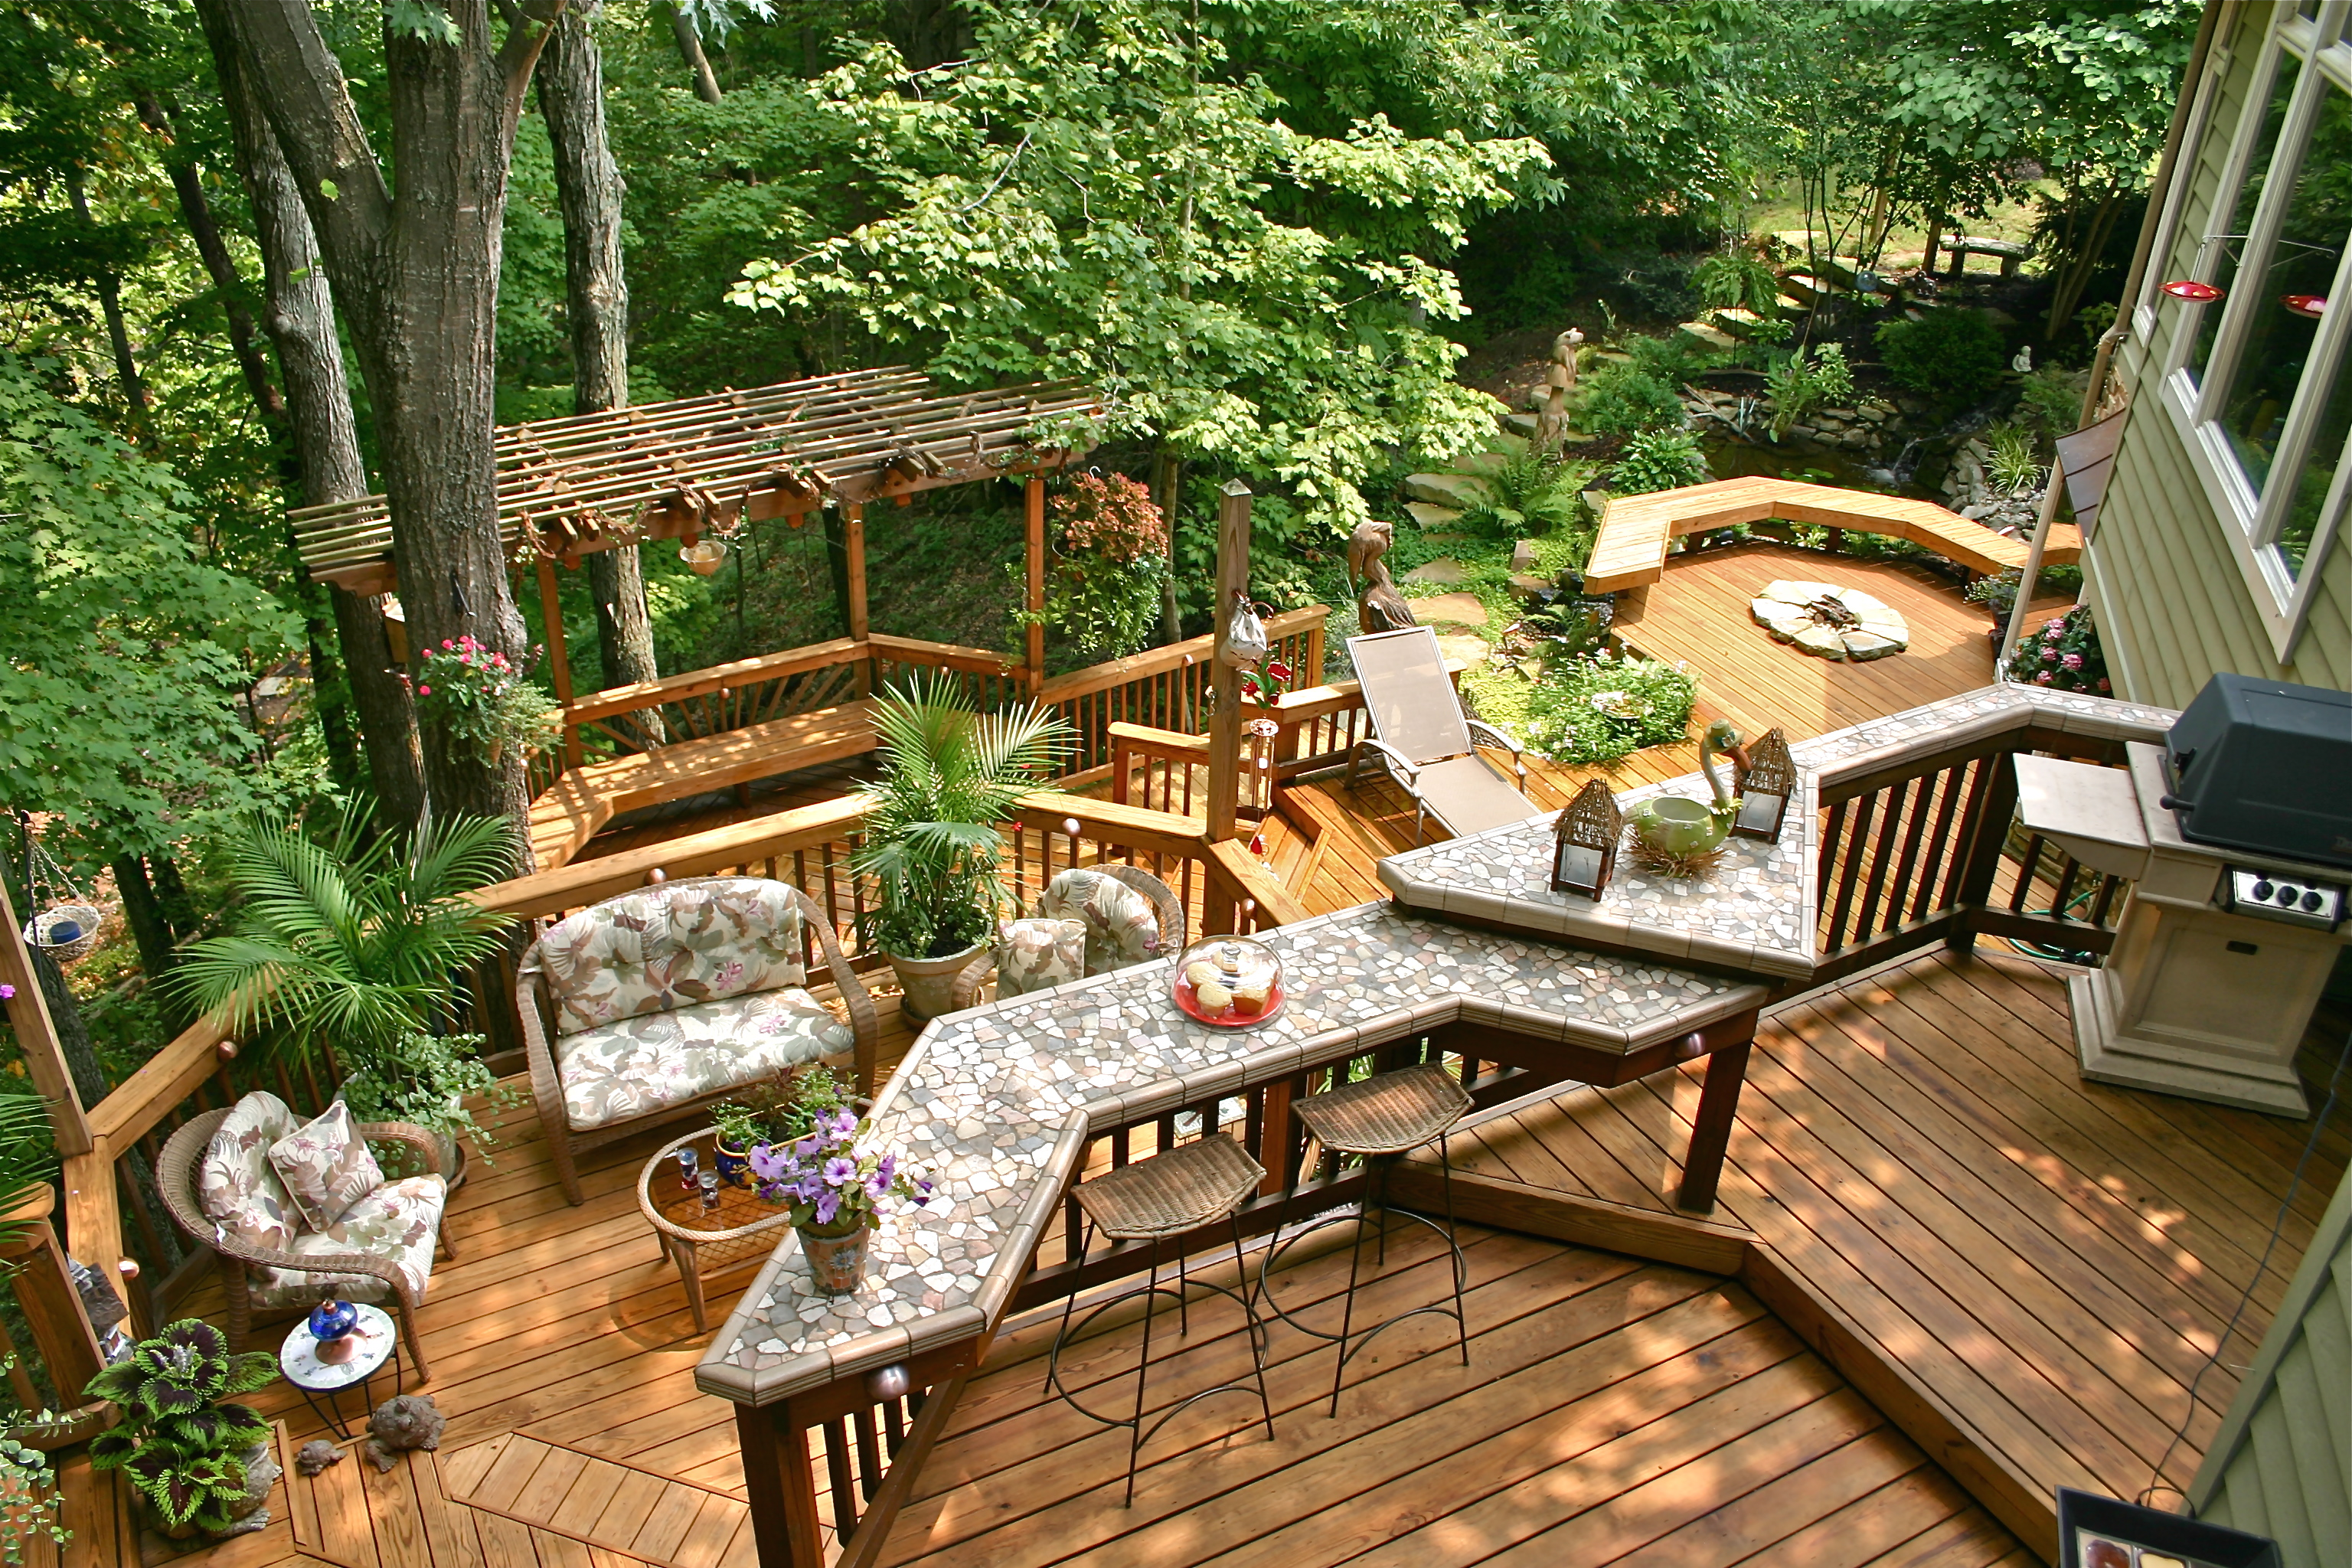 American Deck & Sunroom: Deck Maintenance - Care & Feeding ...